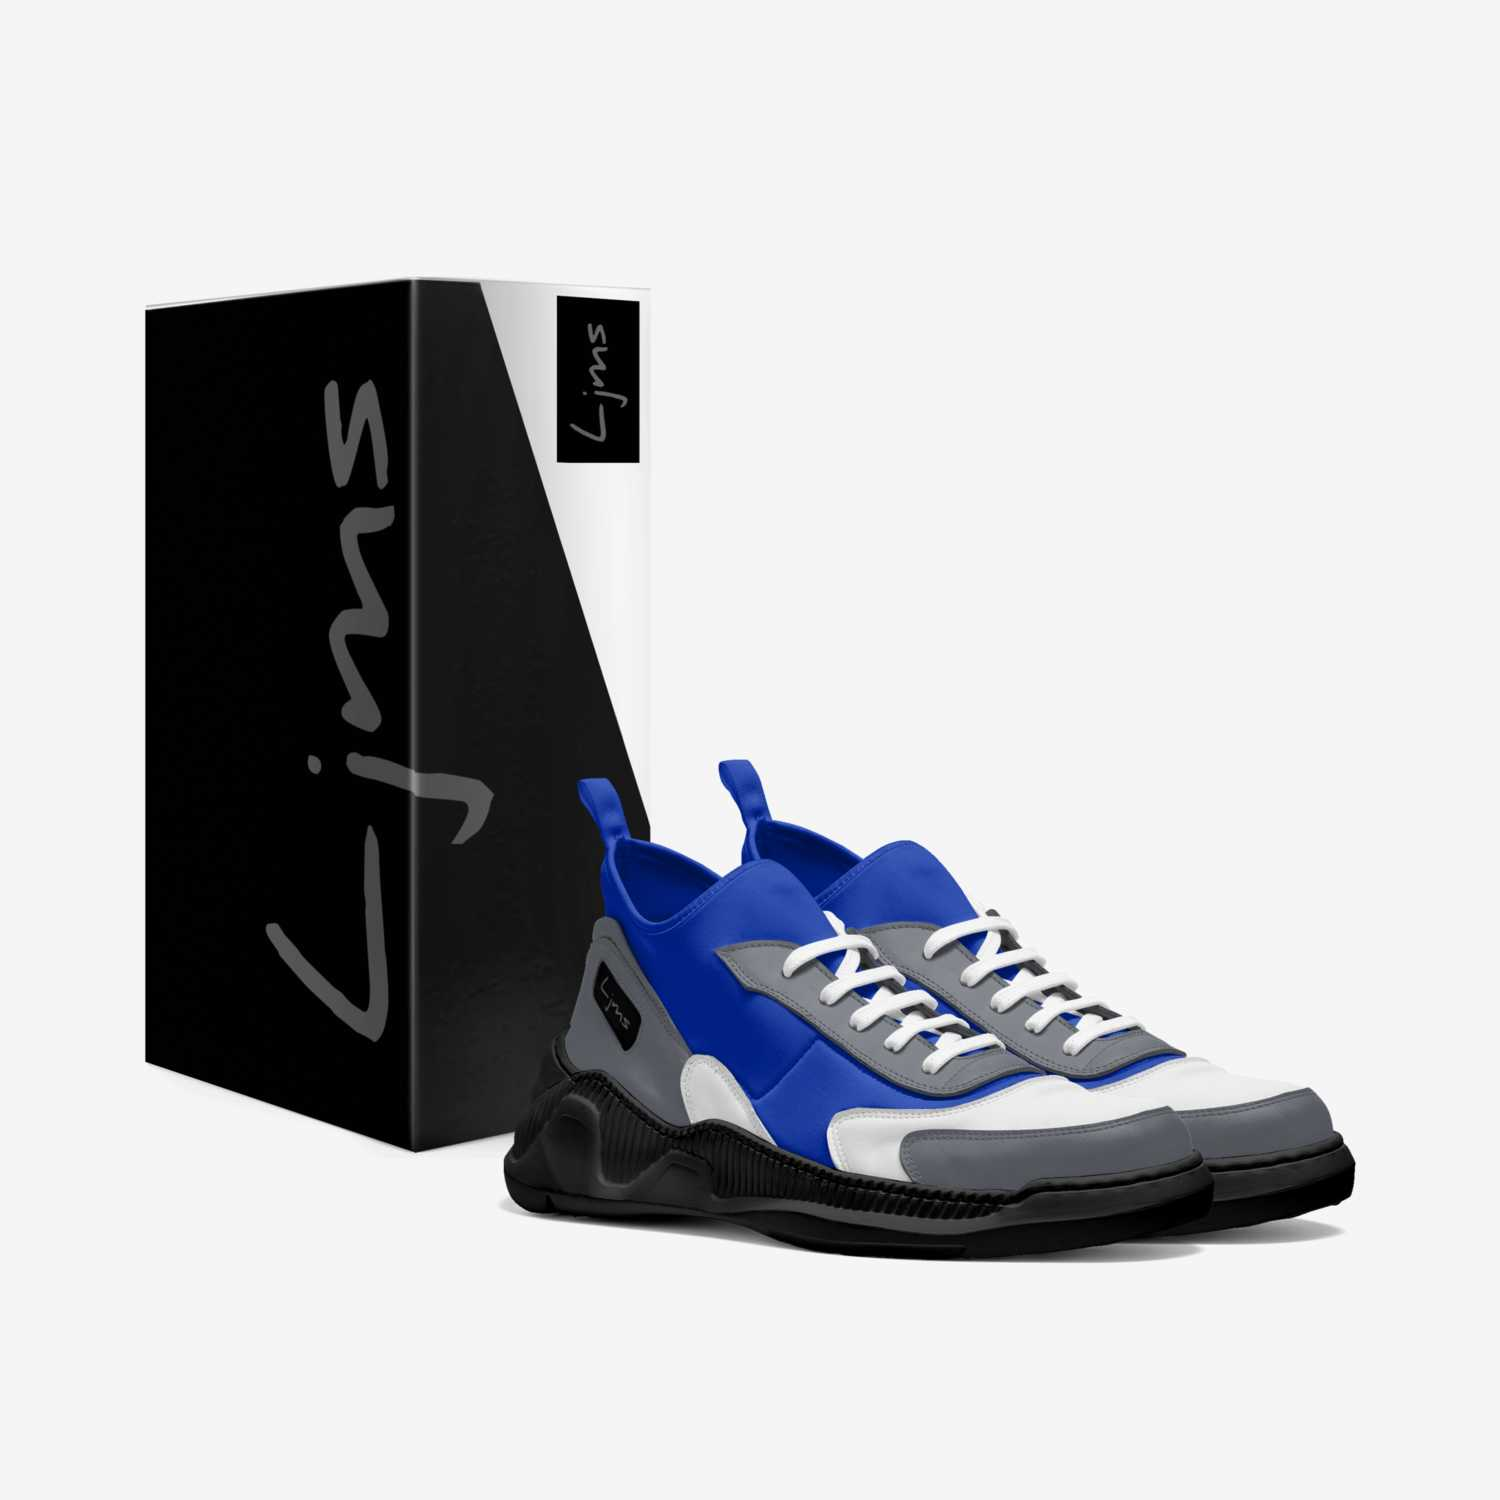 Ljms-Tracks  custom made in Italy shoes by Ljms Fashion | Box view